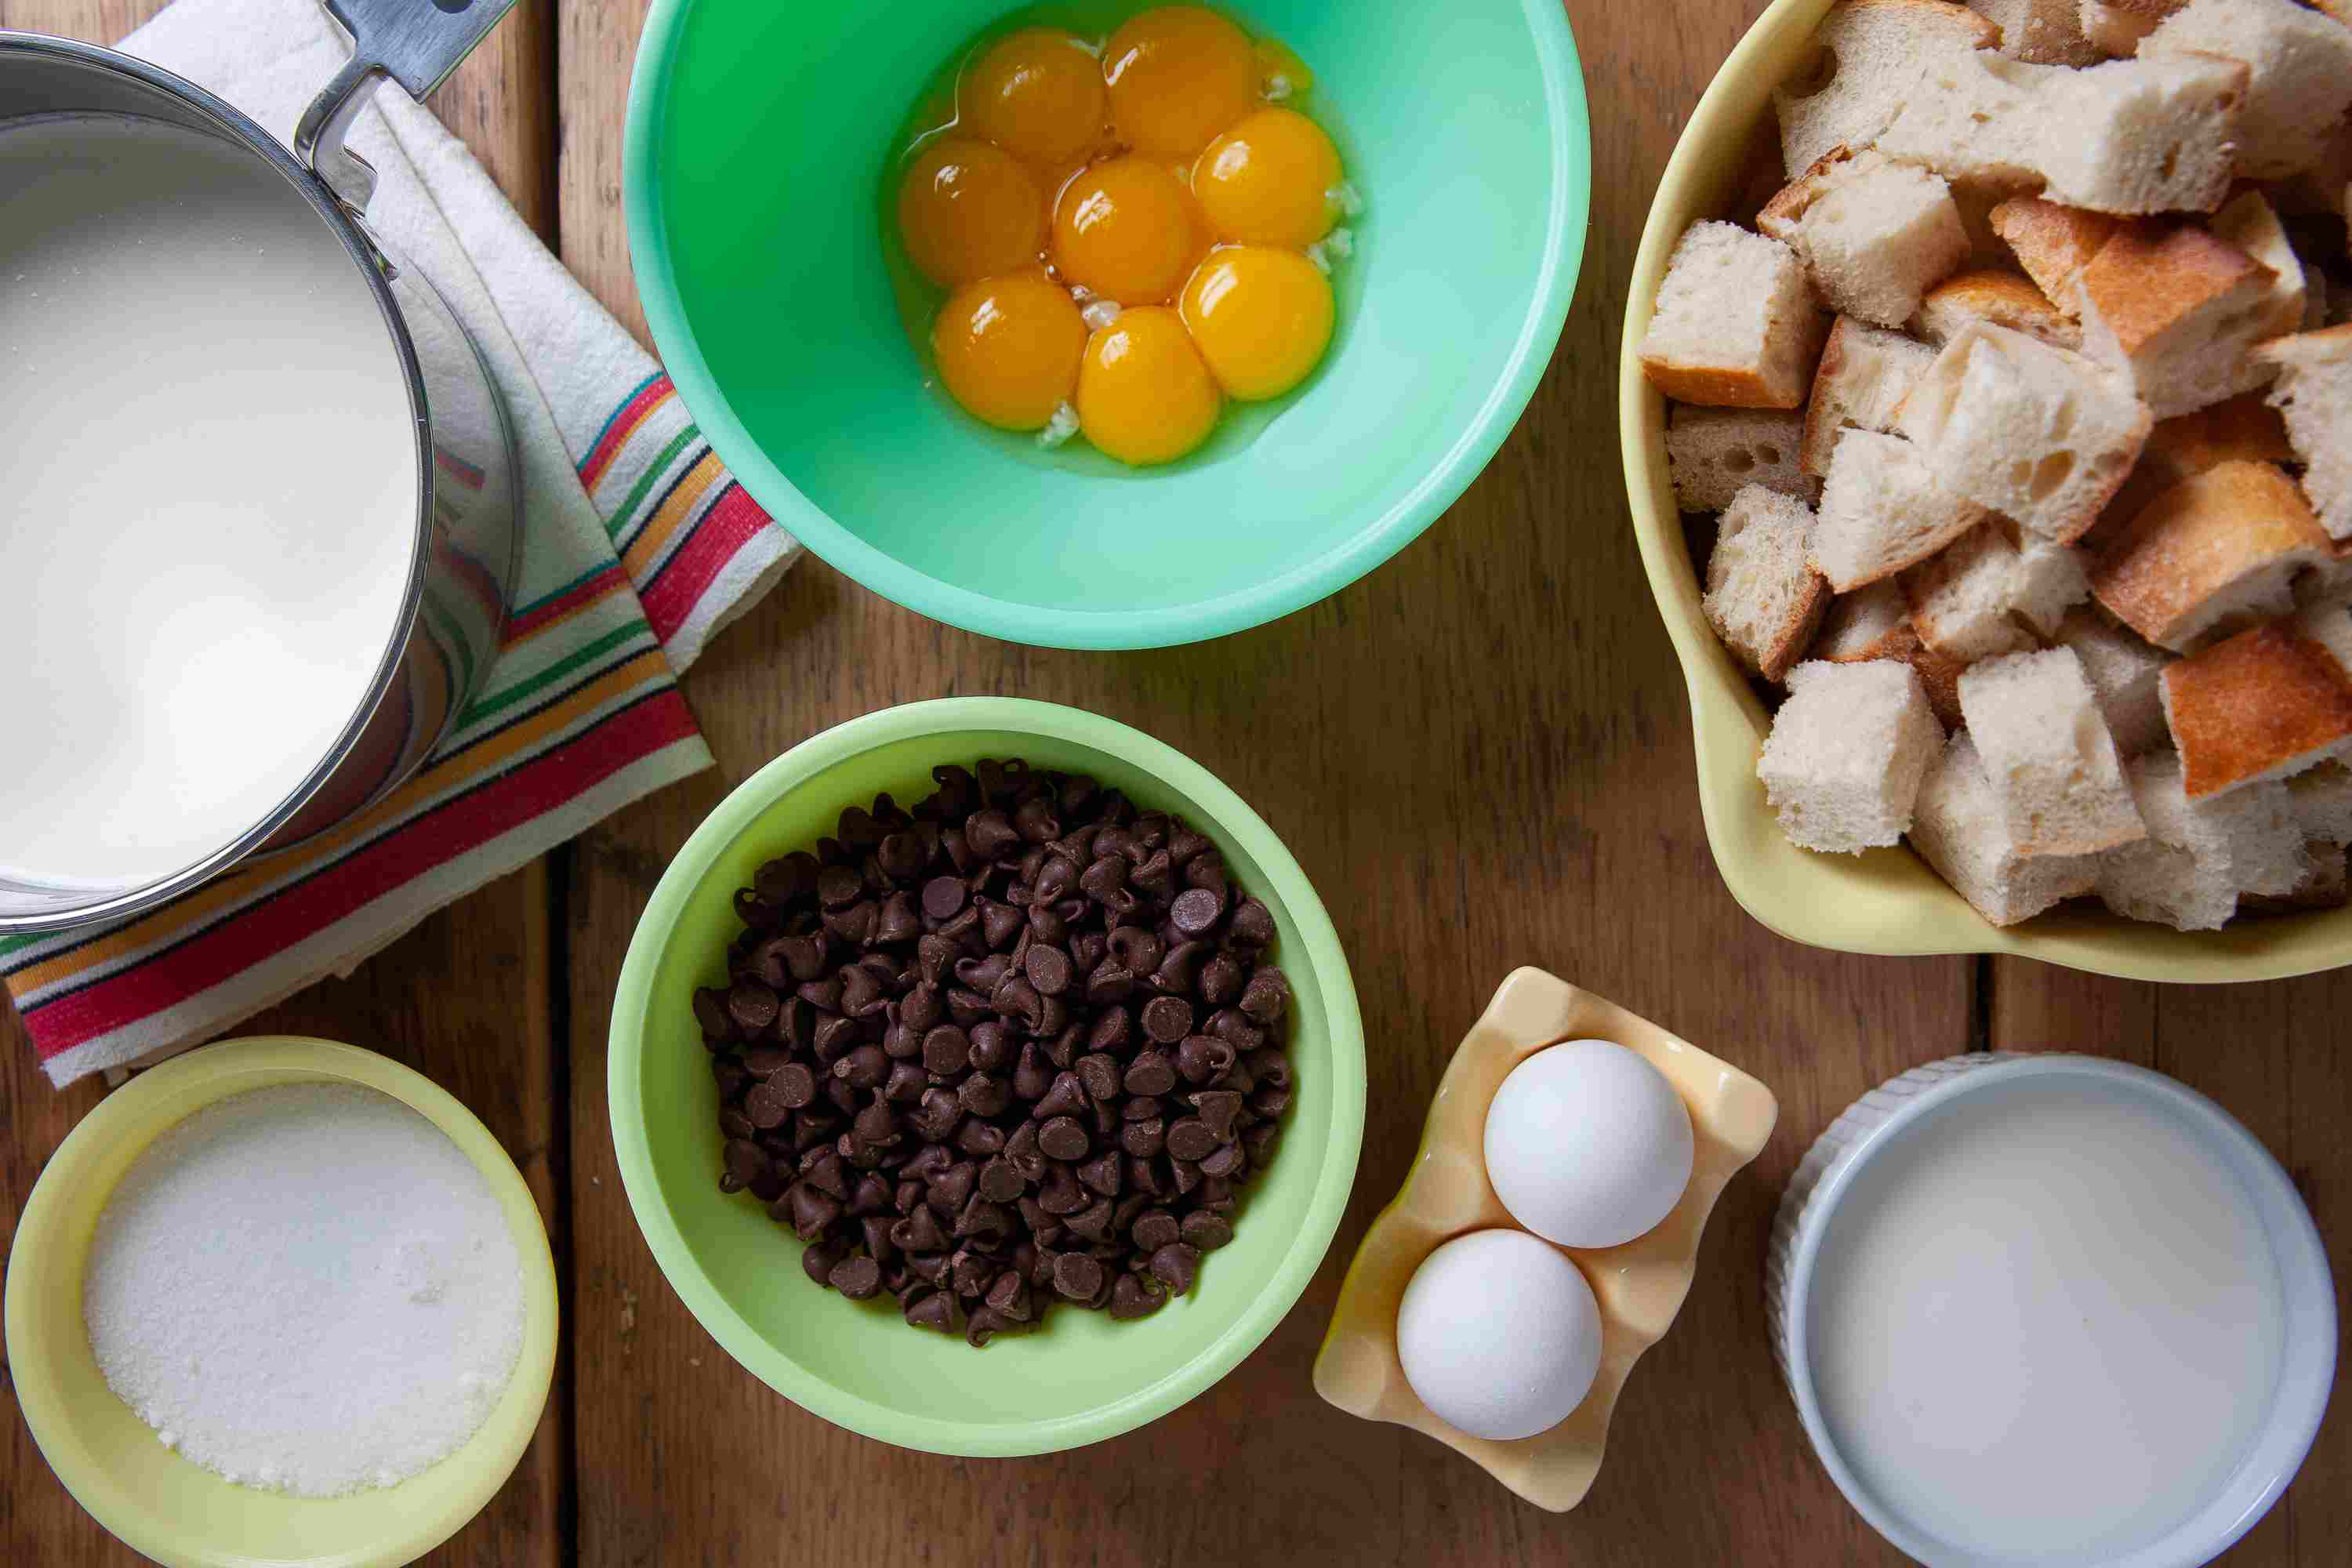 Chocolate Bread Pudding ingredients